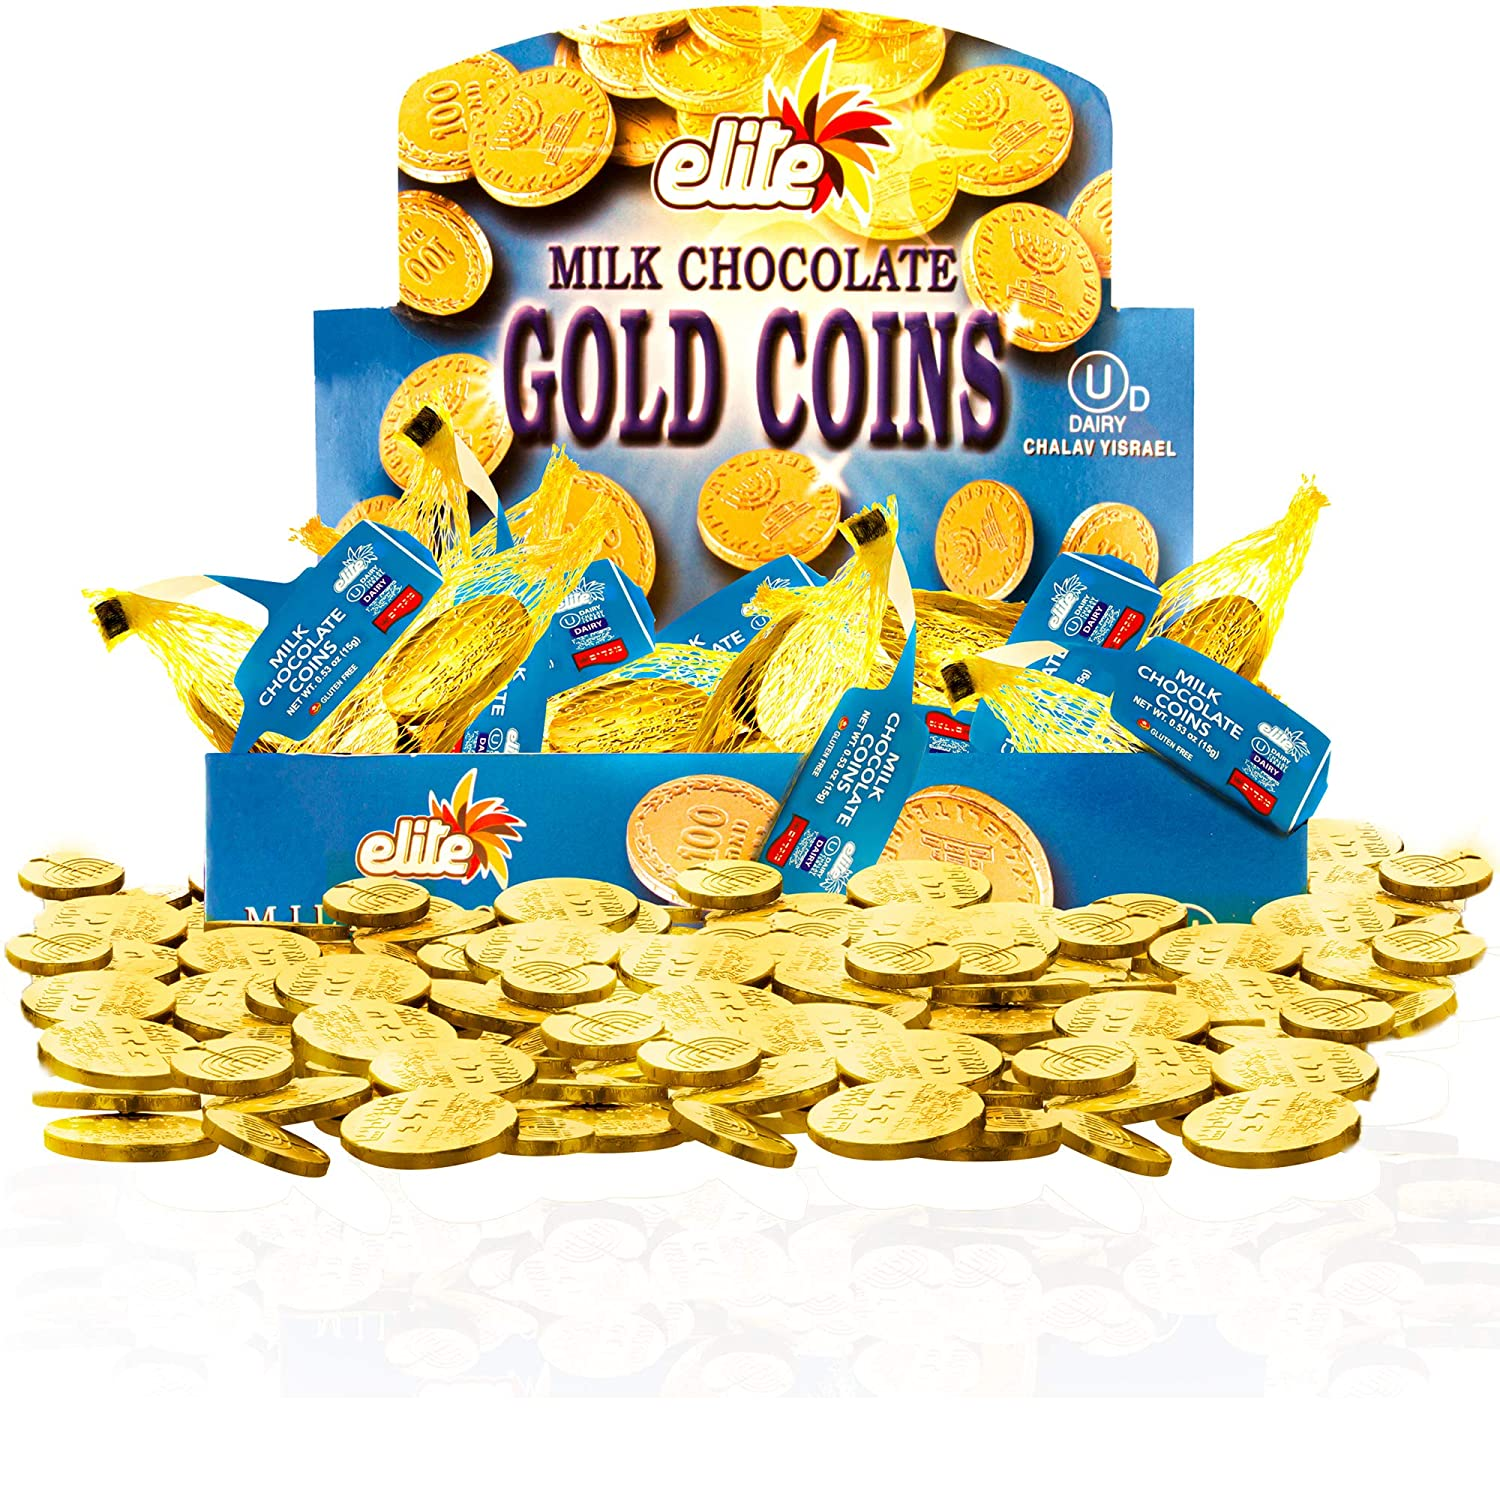 Elite Milk Chocolate Gold Coins, Individually Wrapped, Box of 24 (.53oz) Mesh Bags Filled with Menora Embossed Hanukkah Gelt Coins, Gluten Free